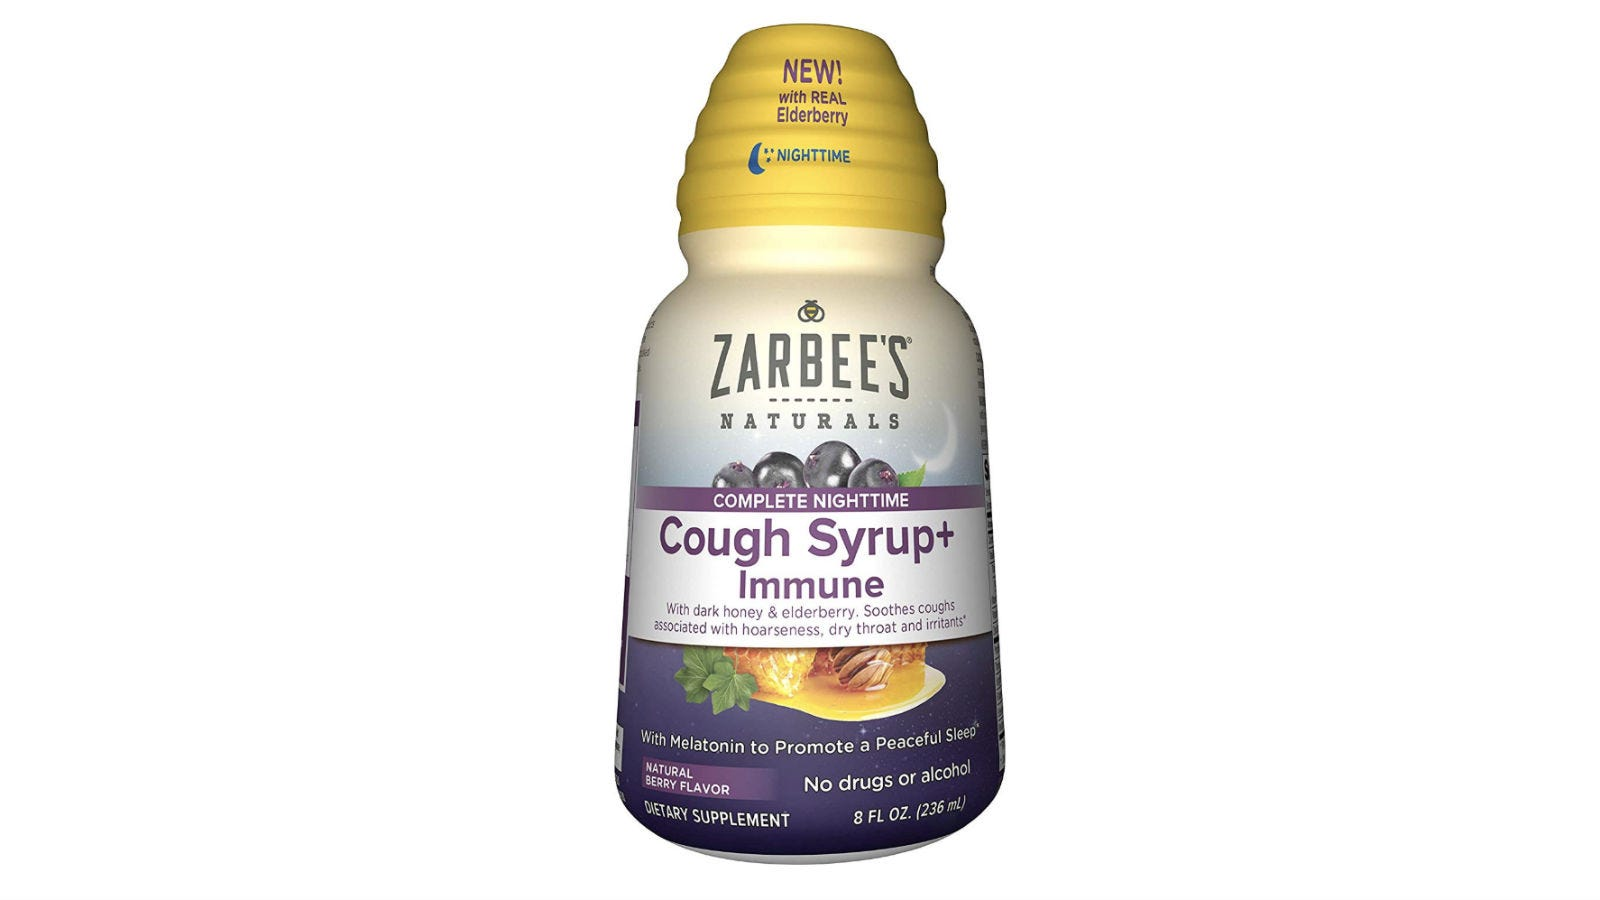 Zarbee's Naturals cough syrup immune